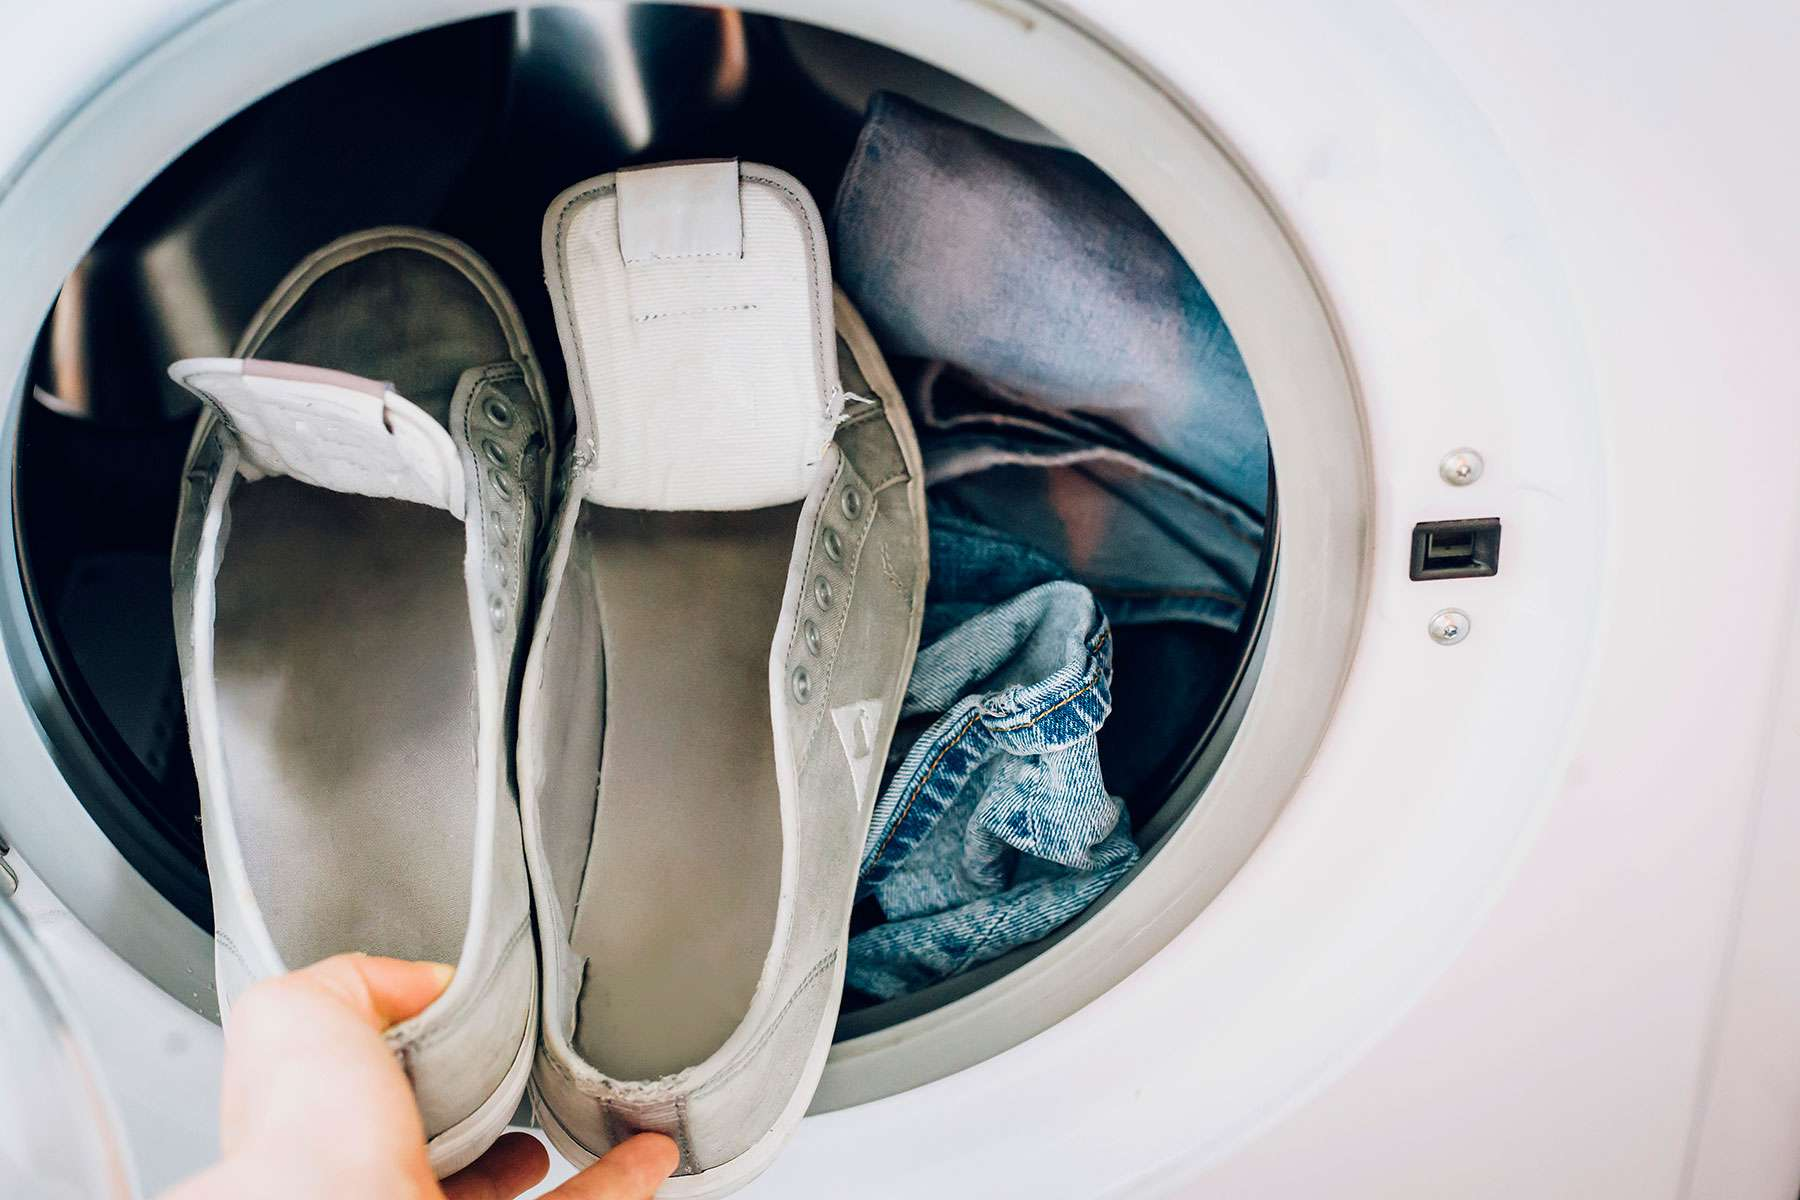 placing shoes in the washer